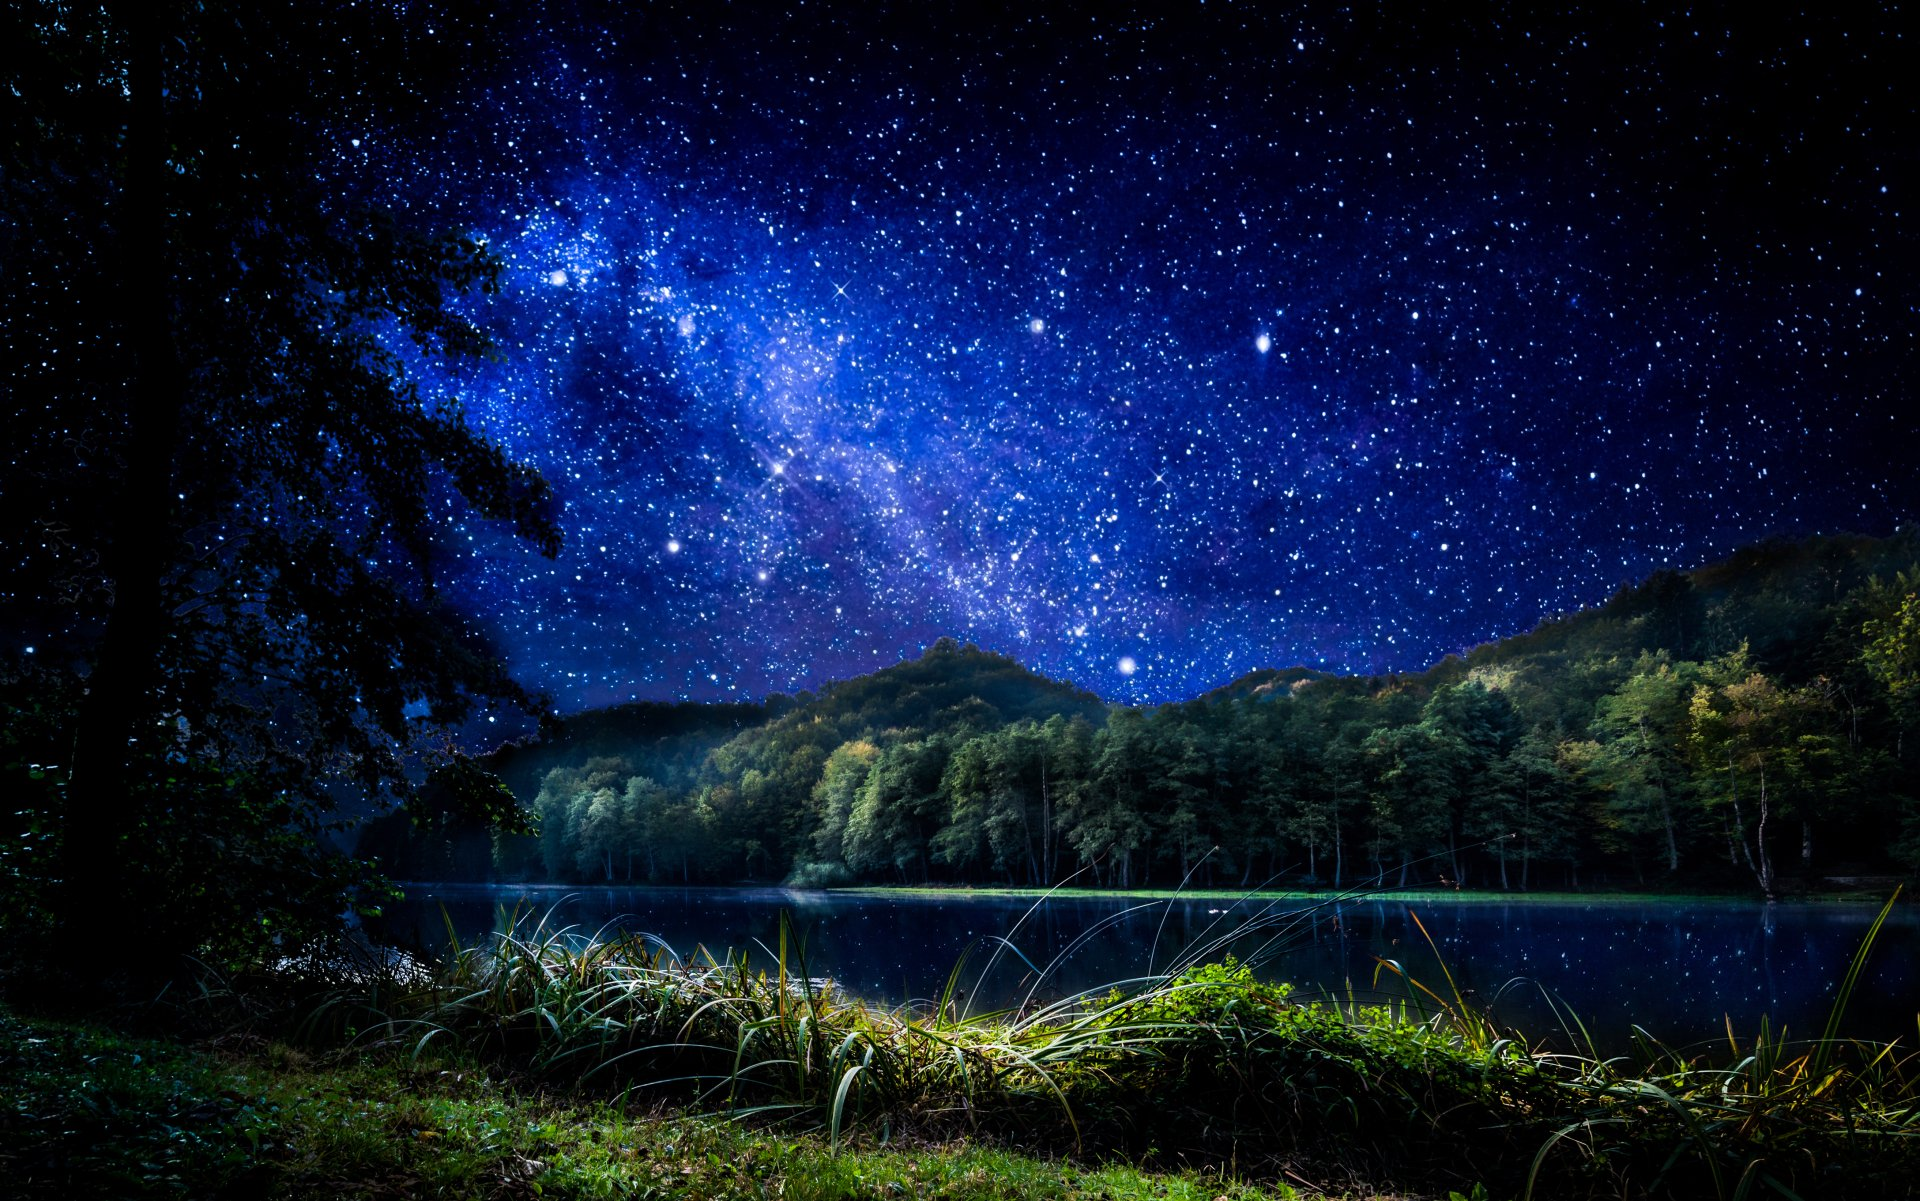 Starry sky over mountain and lake 4k ultra hd wallpaper for Night sky wallpaper 4k